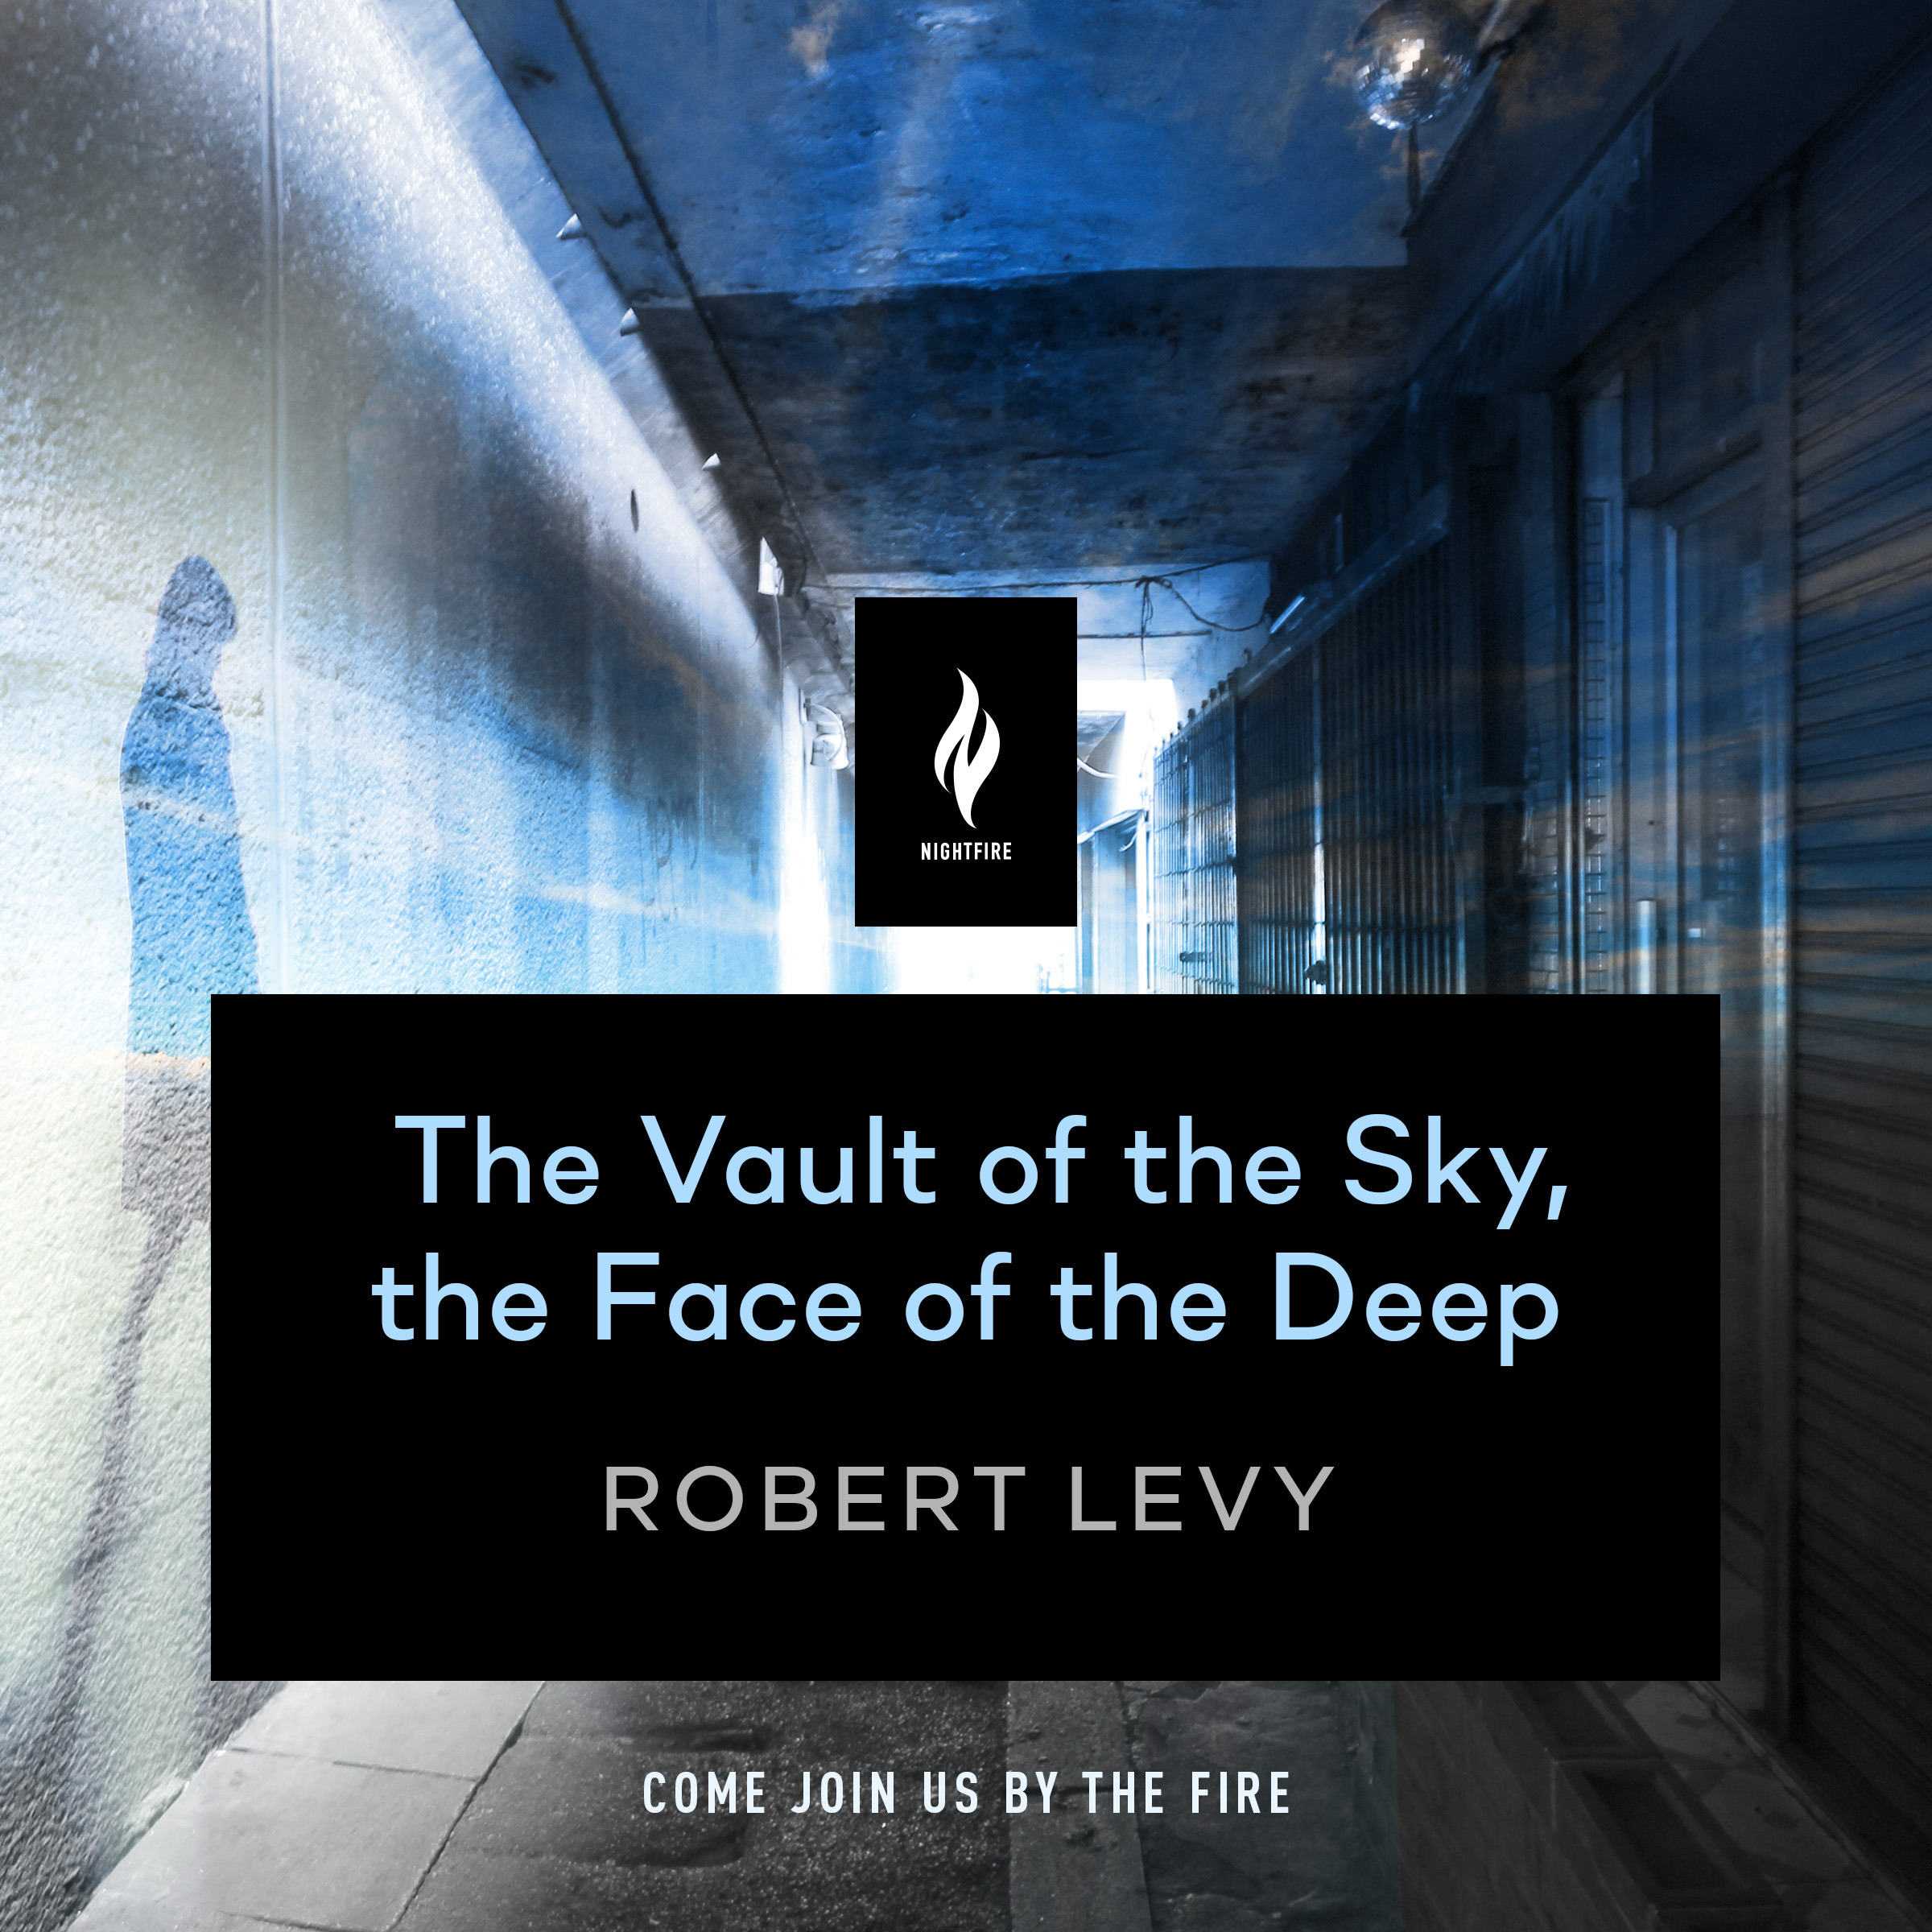 thevault of the sky the face of the deep_1